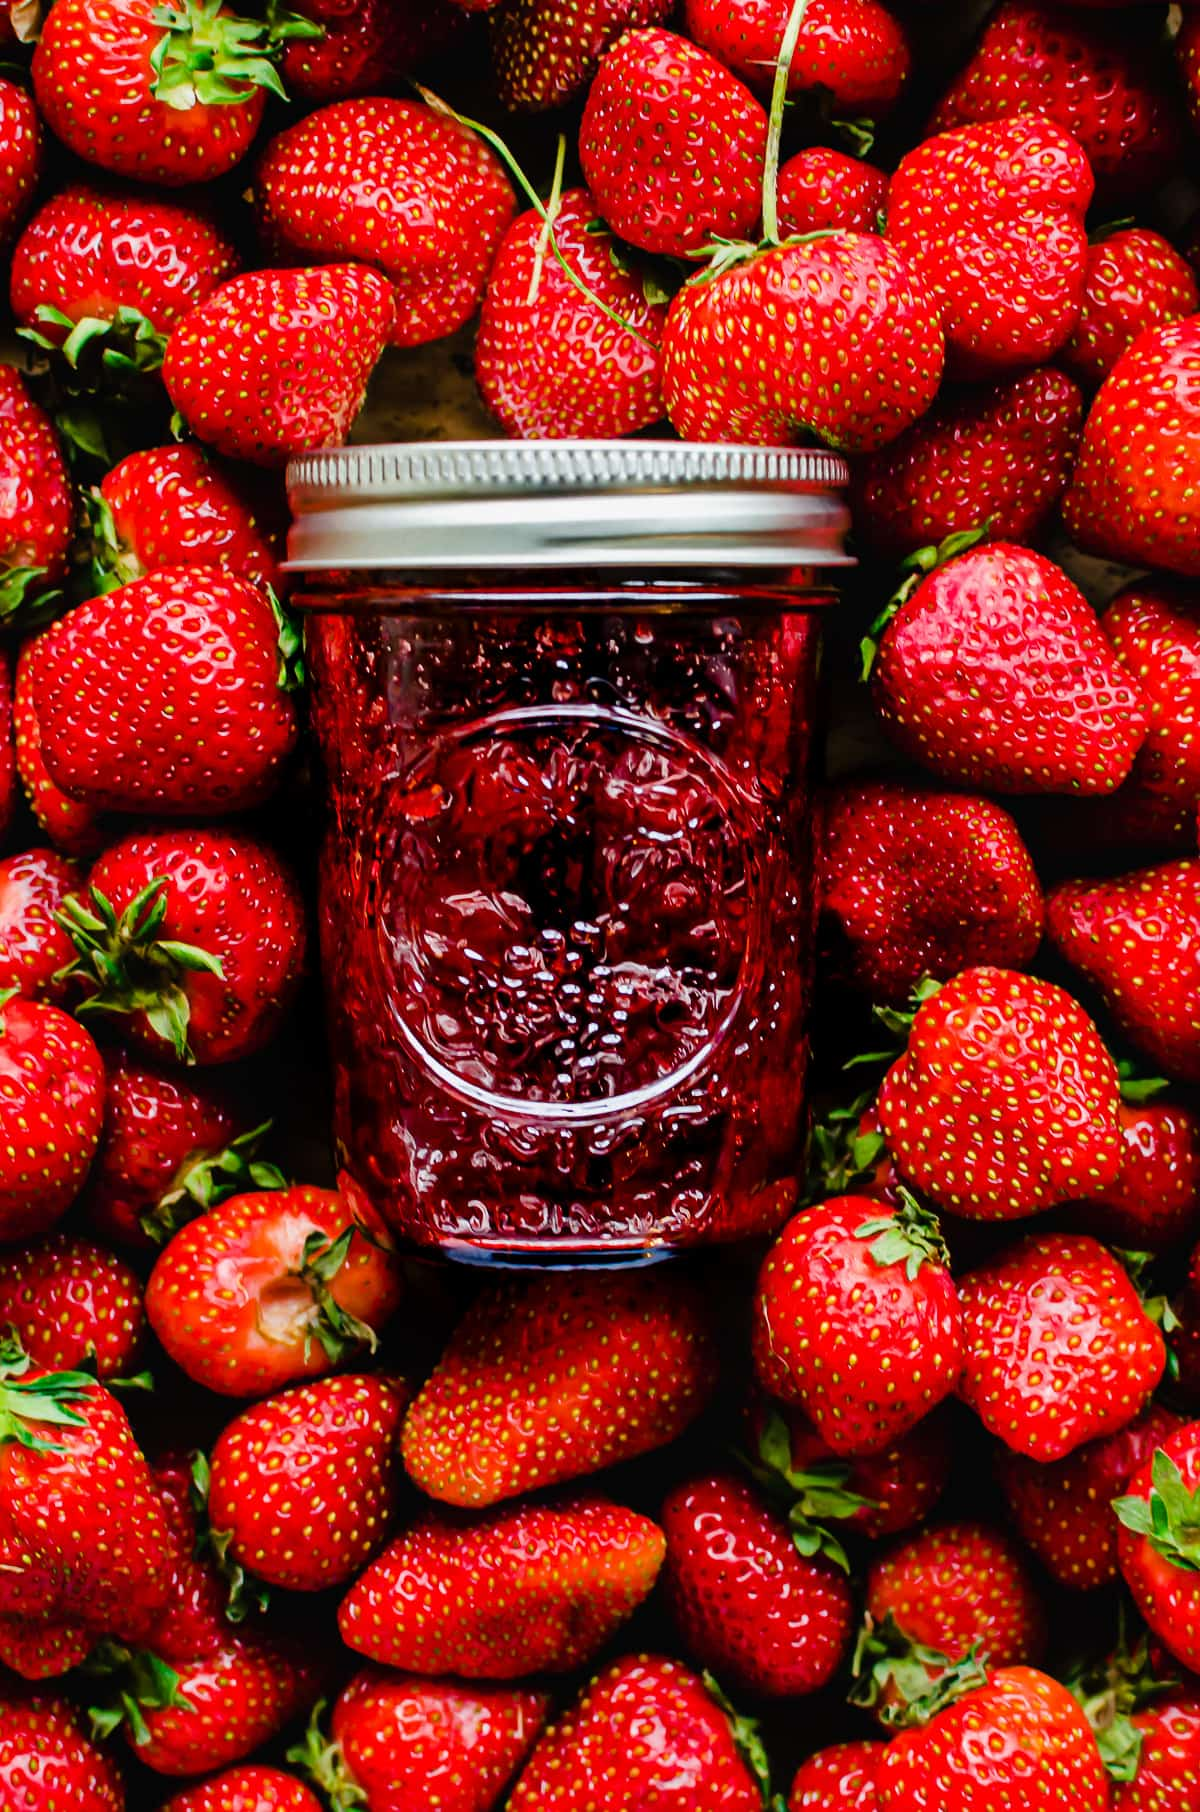 A jar of strawberry jam on top of a bed of fresh strawberries.